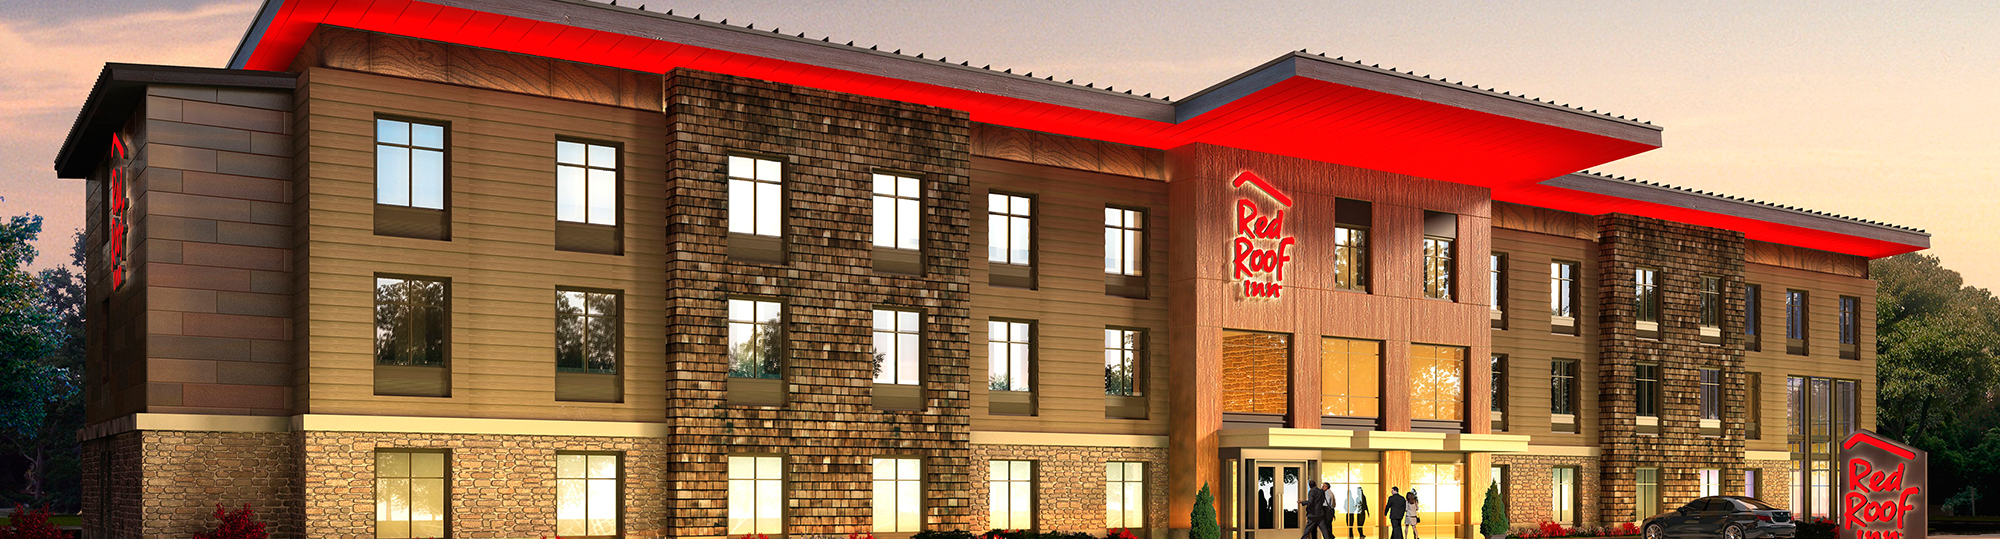 Red Roof Inn Military Discounts with Veterans Advantage